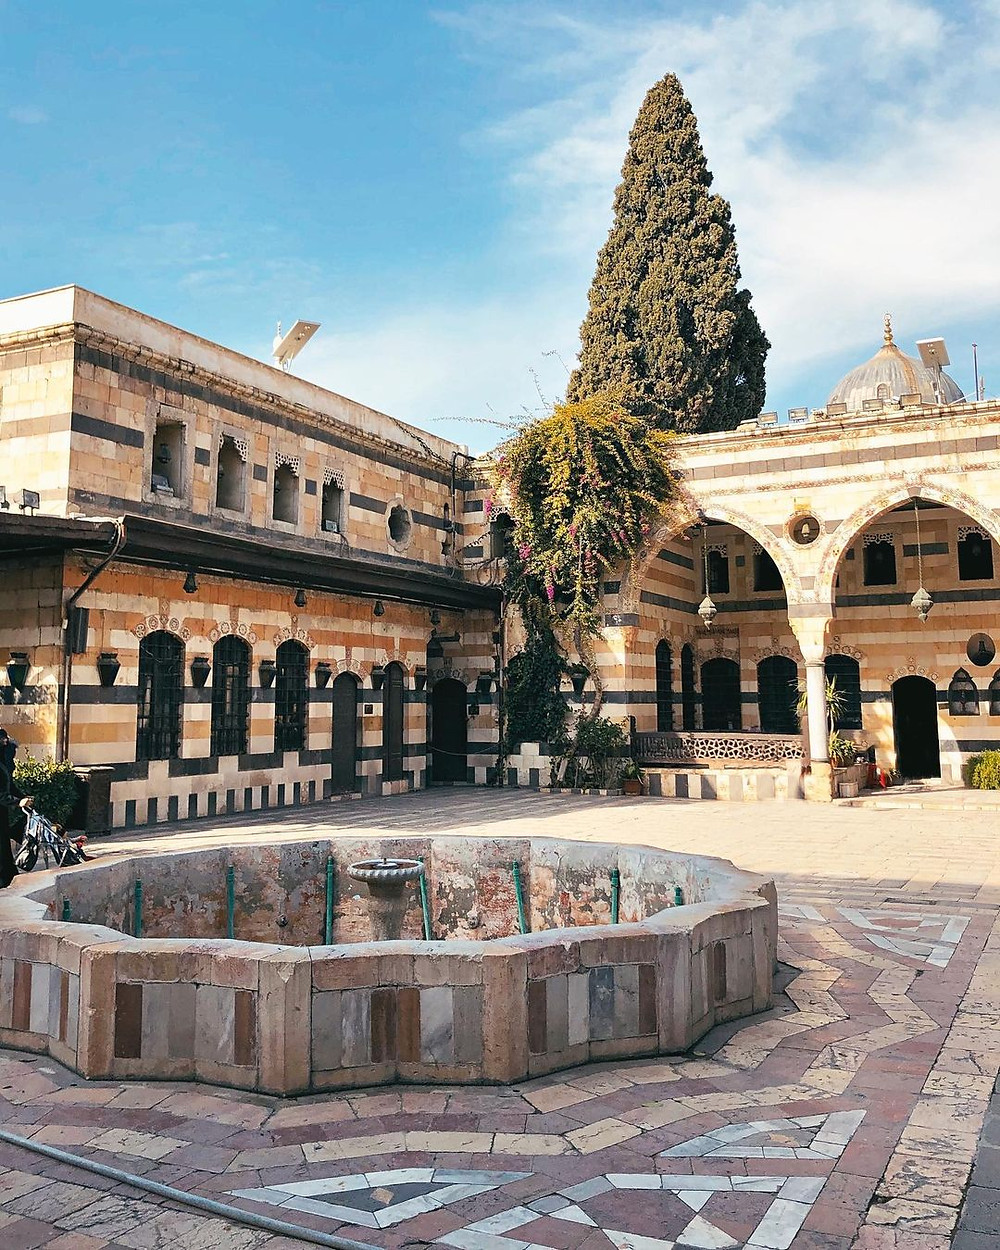 Syria Travel Guide